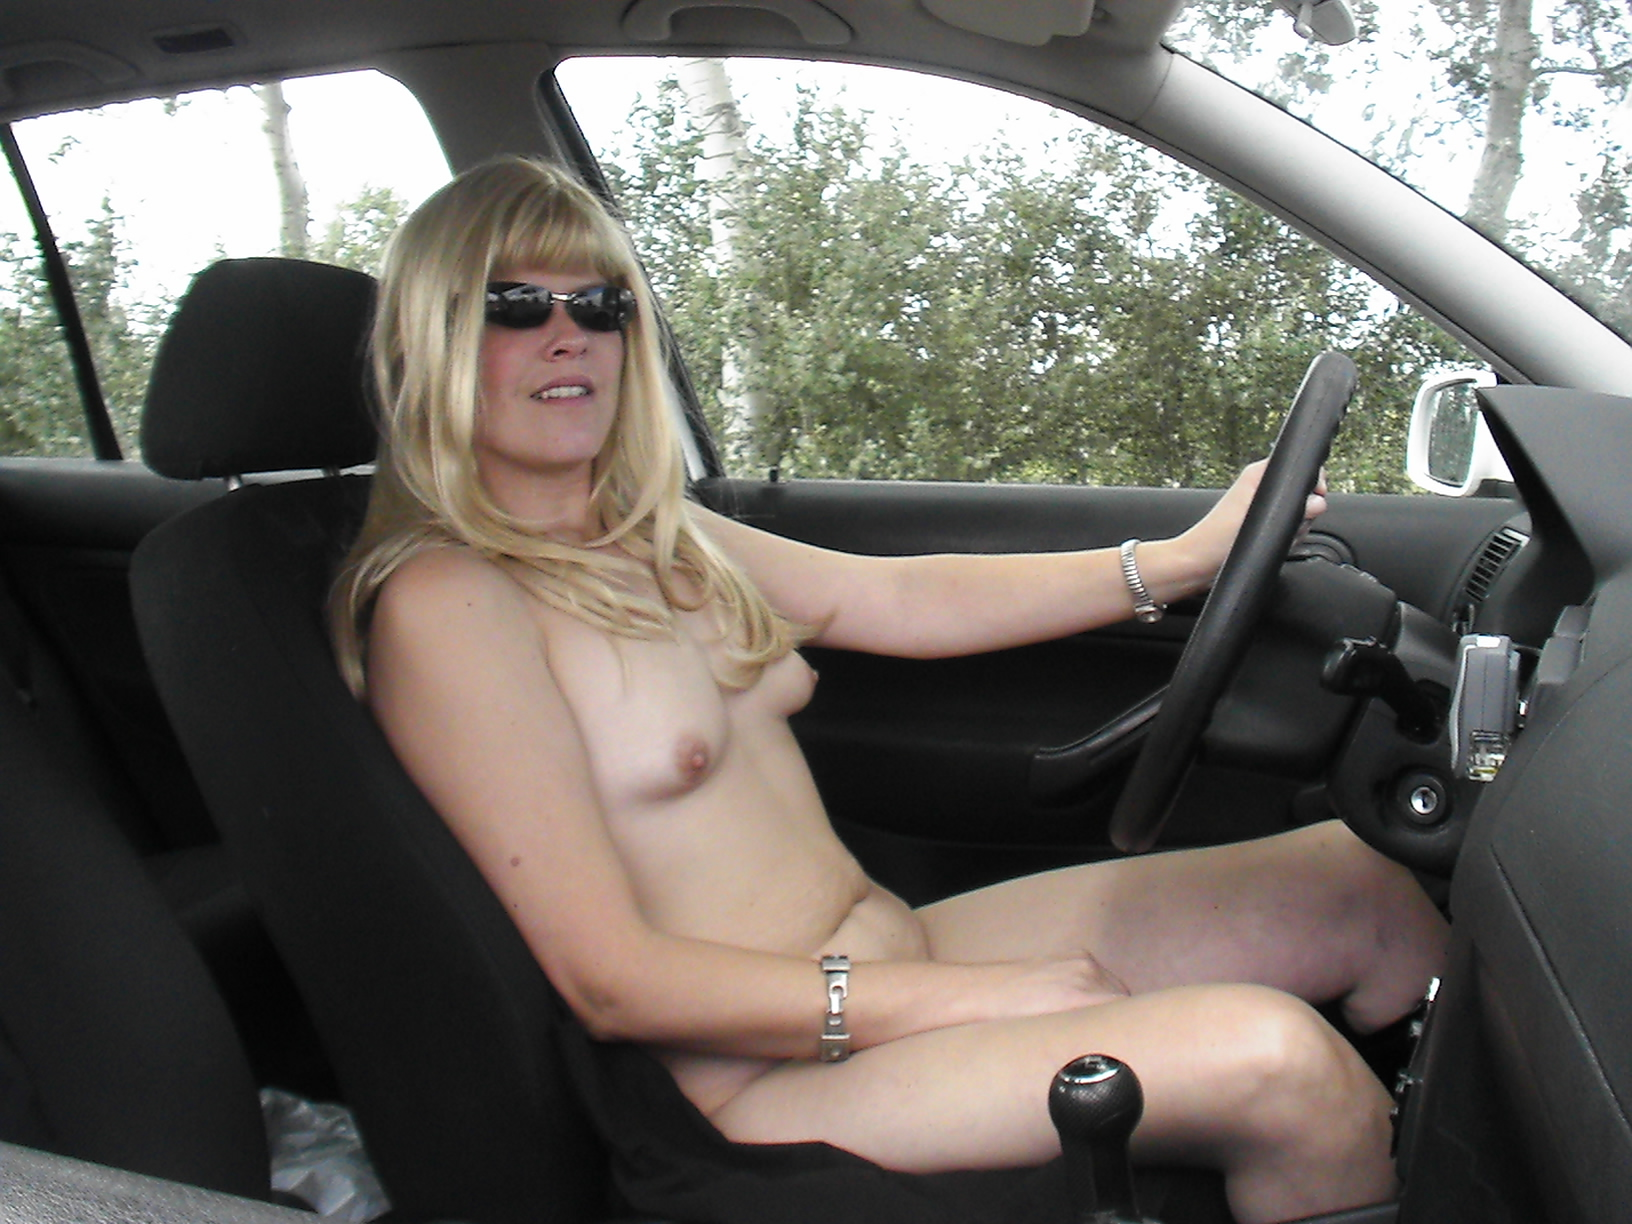 Nudist vehicle driving